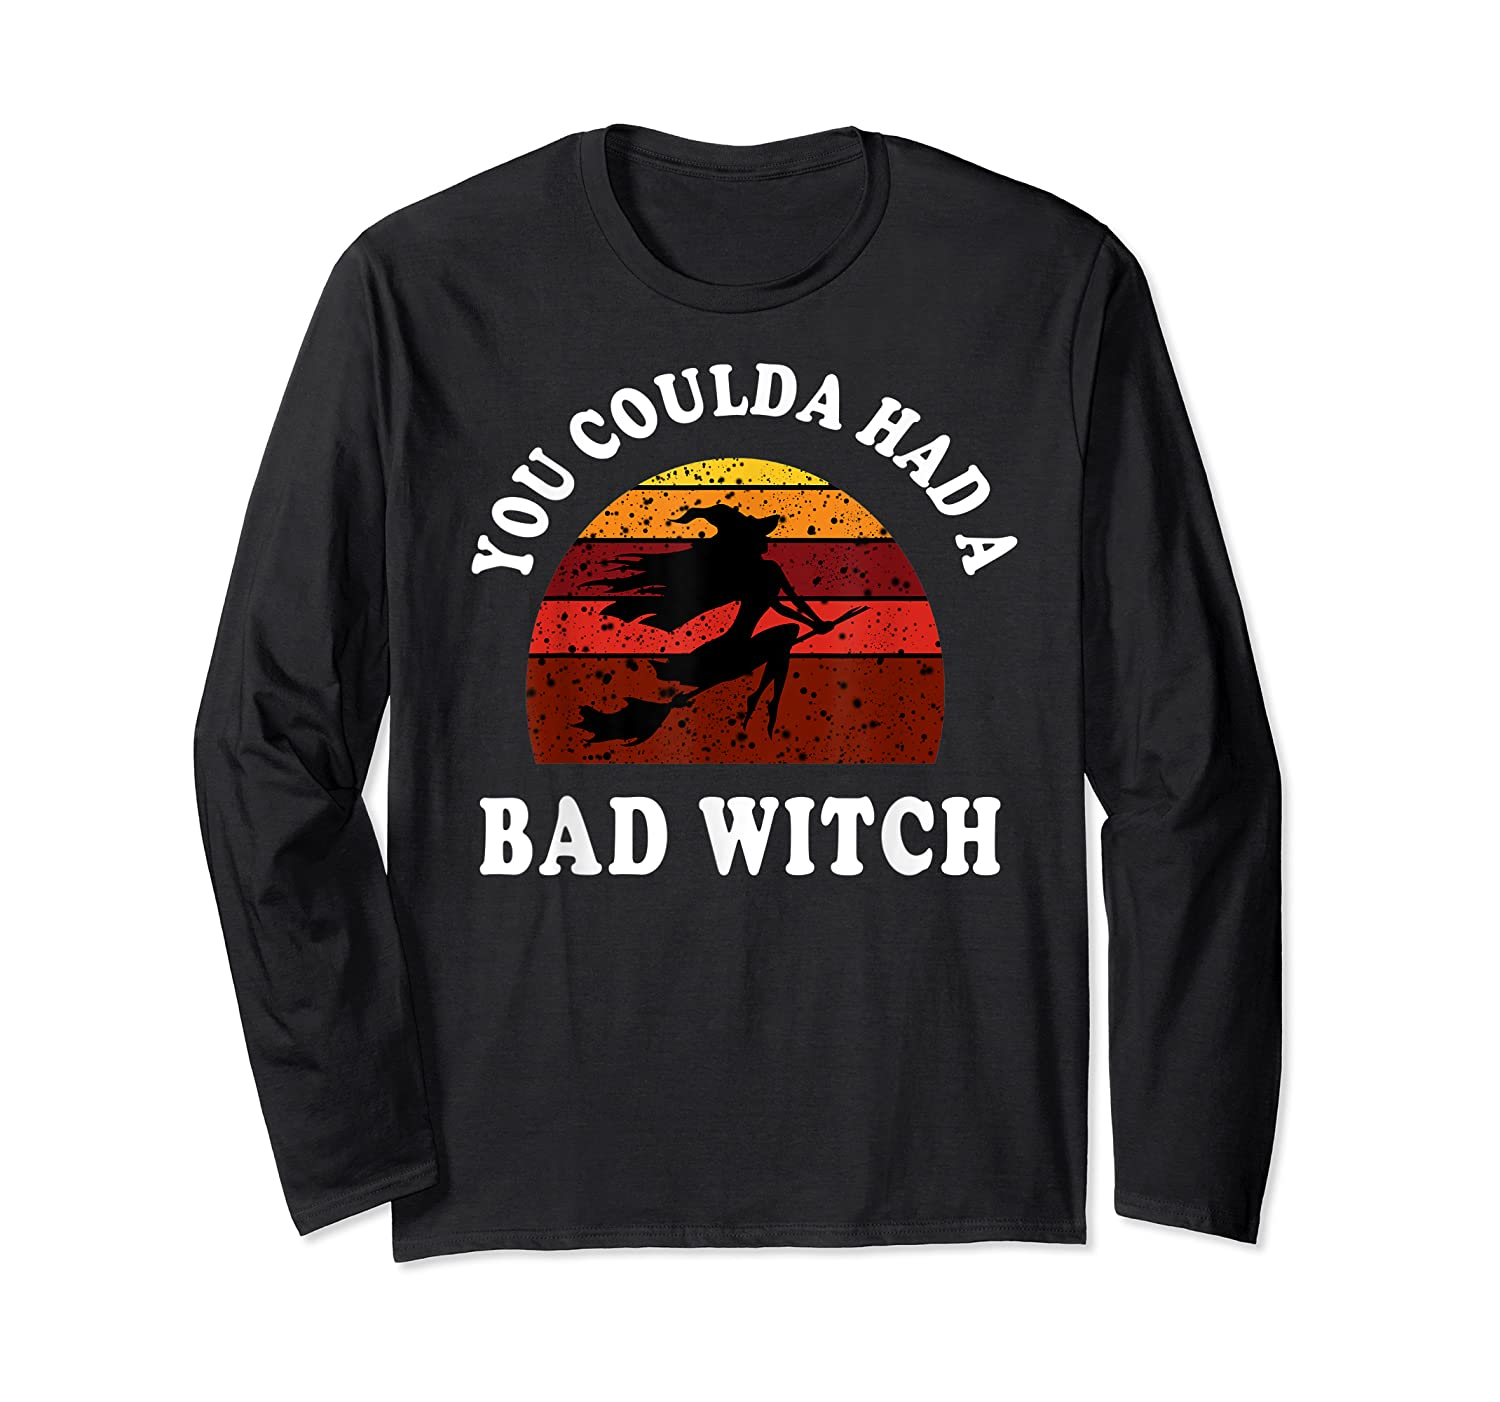 You Coulda Had A Bad Witch Vintage Custom Gift Halloween Shirts Long Sleeve T-shirt